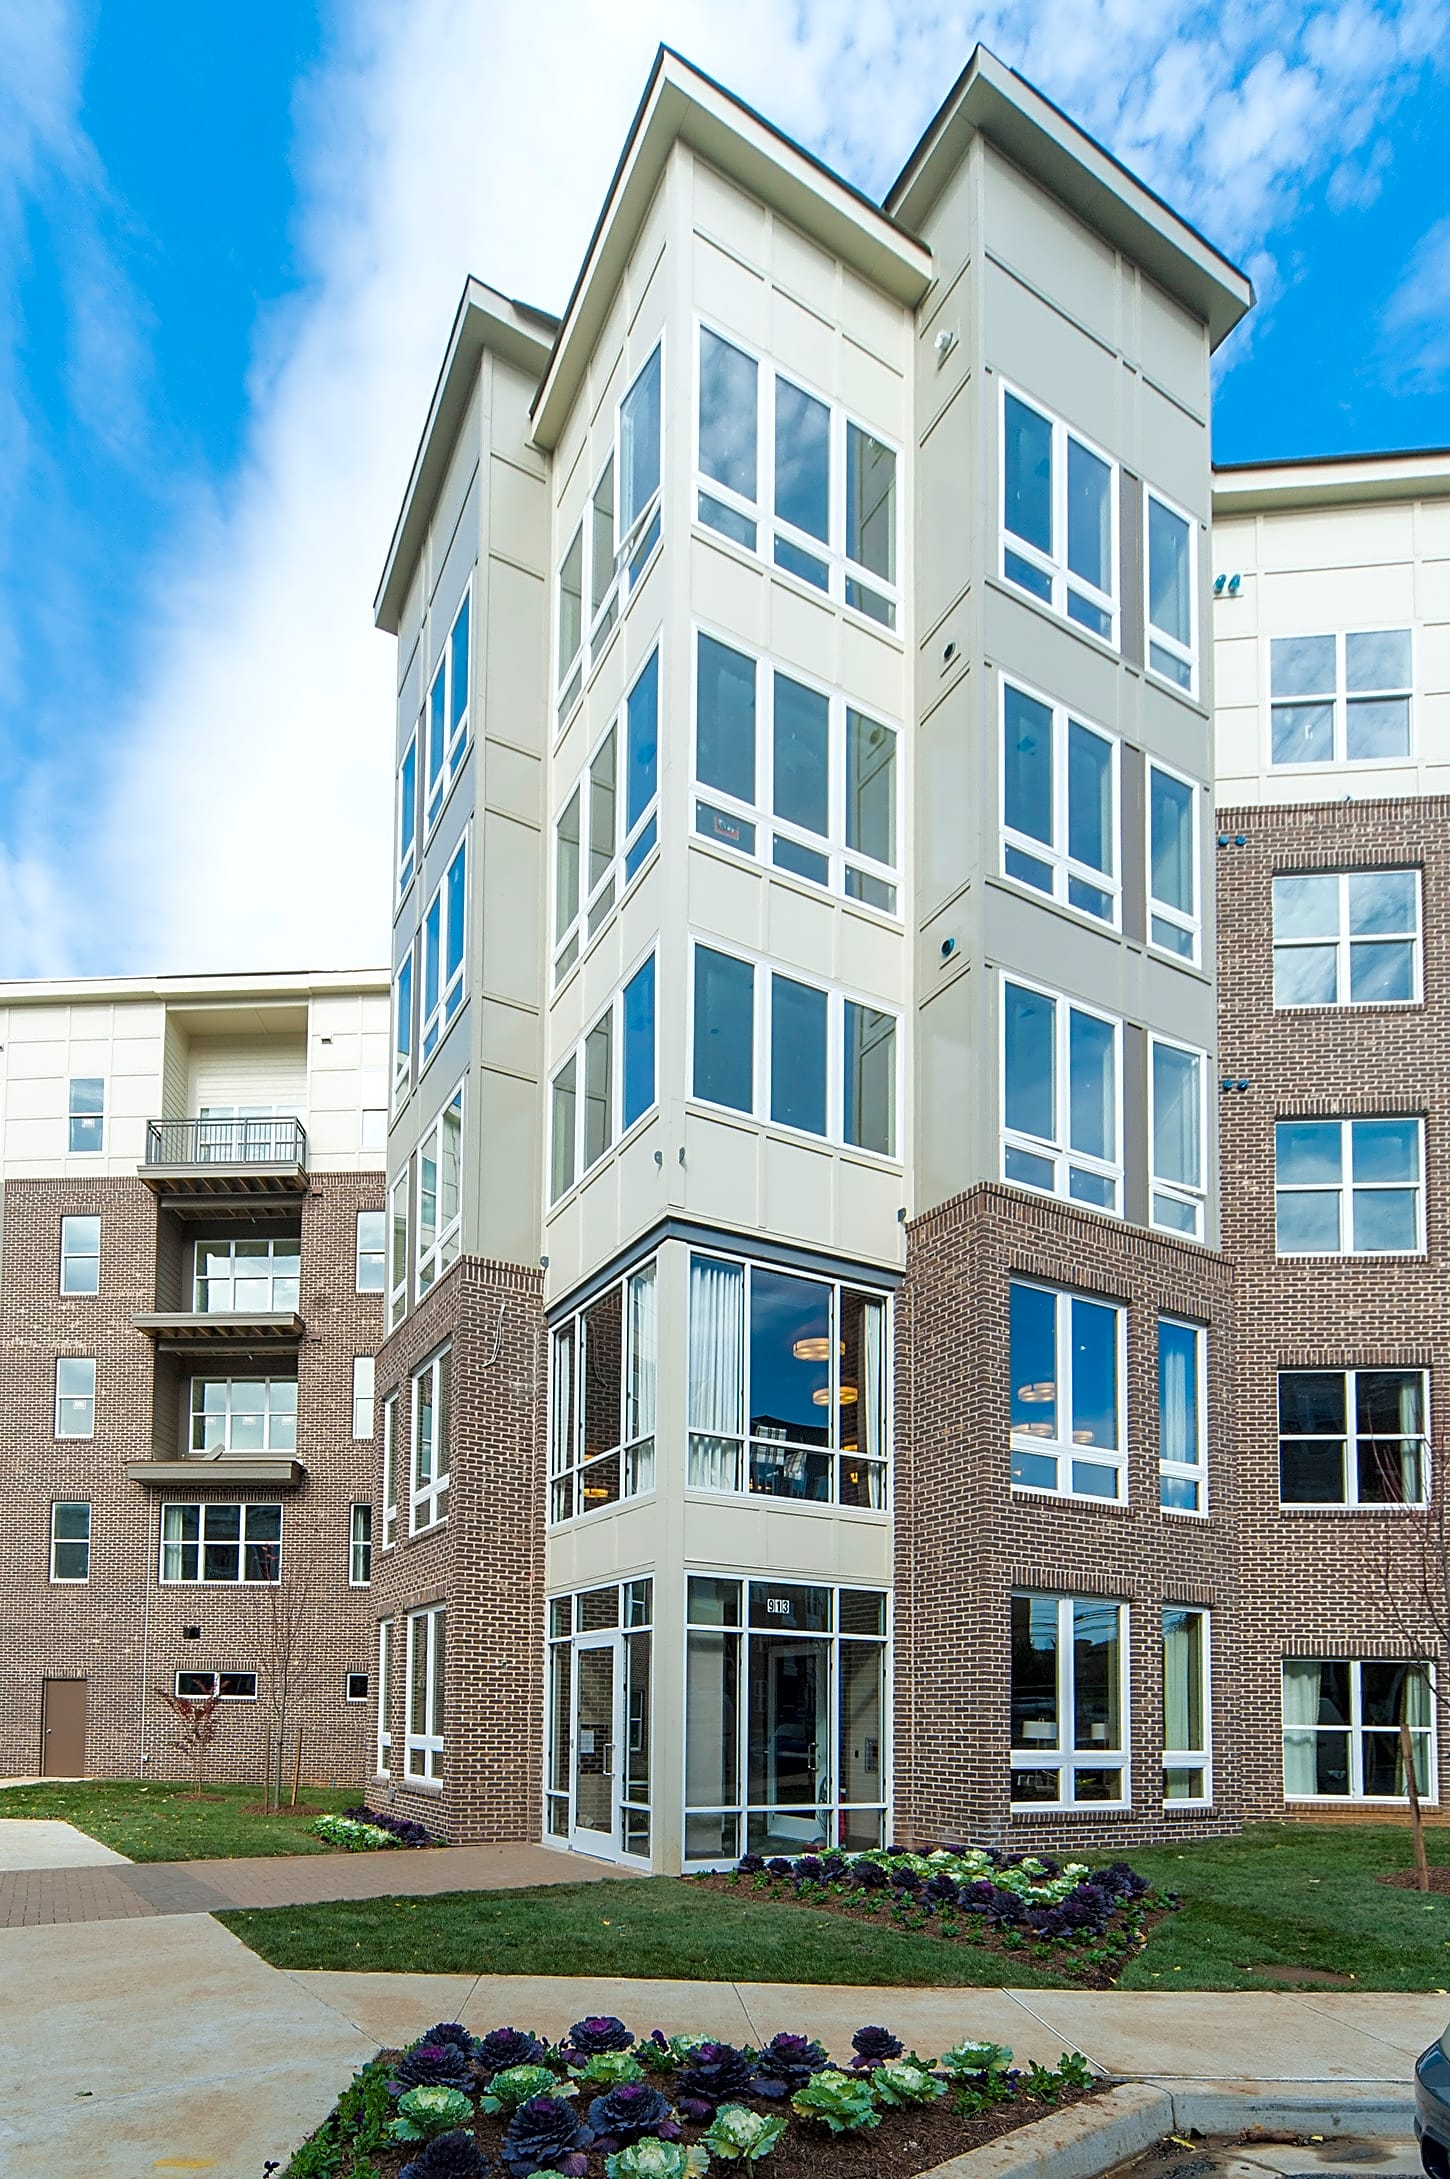 1 Bedroom Apartments for Rent in Towson, MD